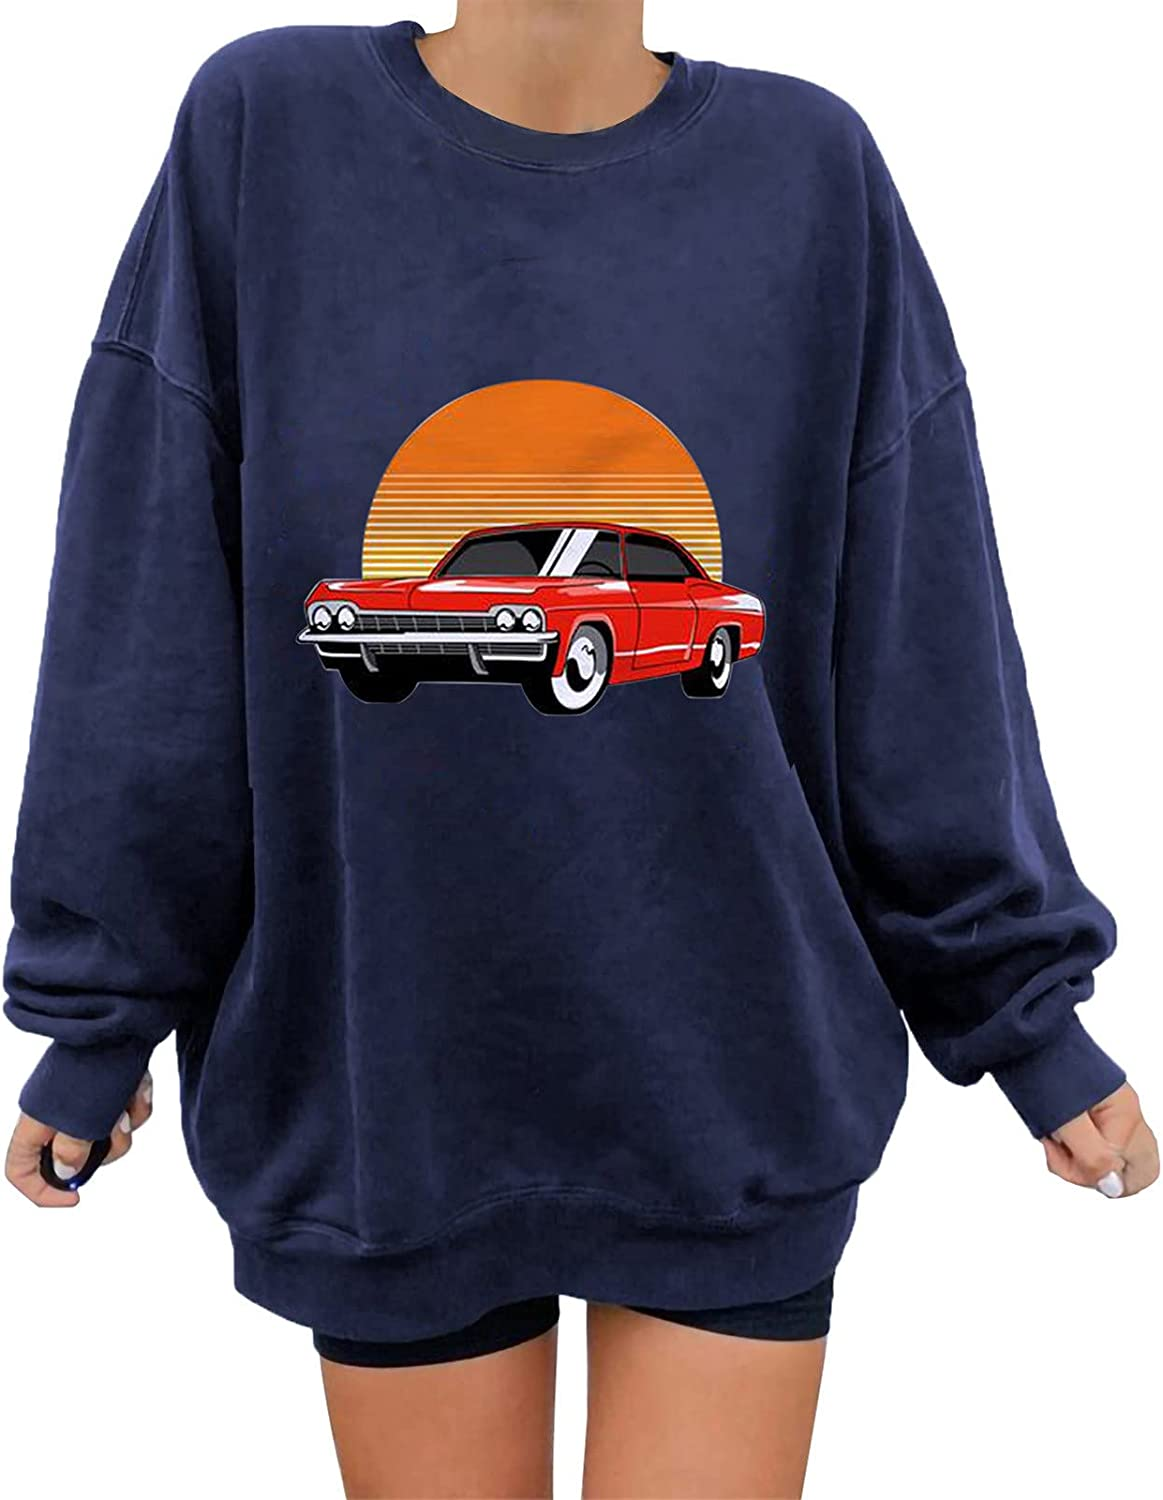 Womens Cute Sweatshirt Classic Car Print Tops Fashion Long Sleeve Blouse Round Neck Pullover Plus Size